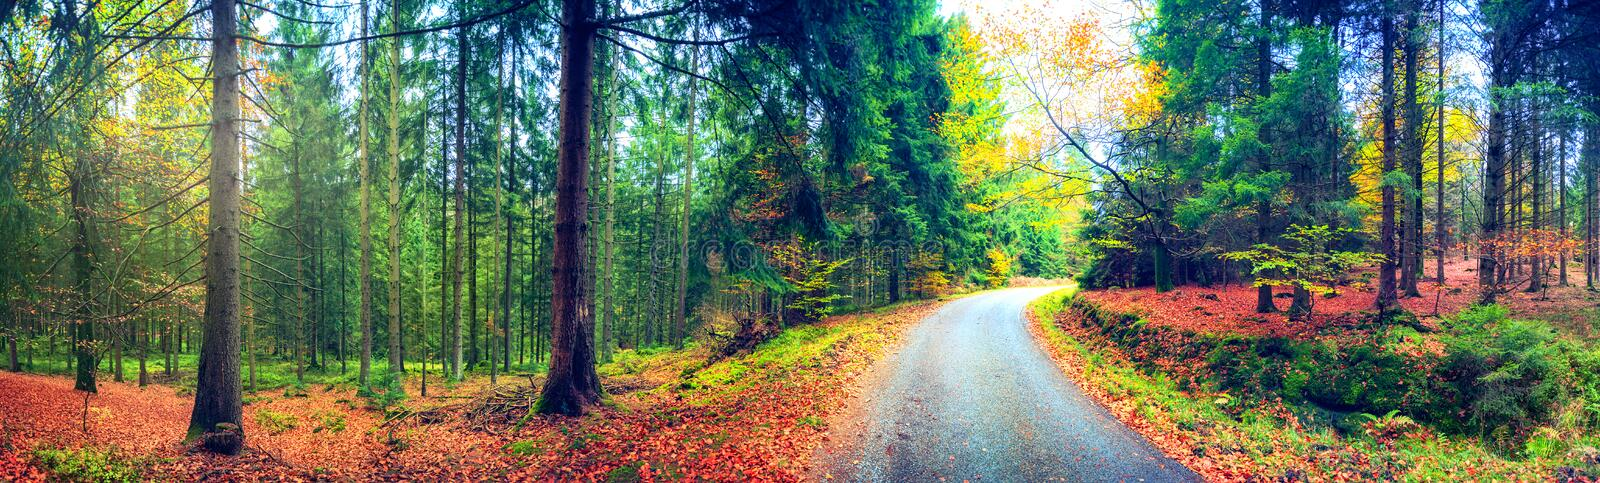 Panoramic autumn landscape with forest road. Fall nature background royalty free stock images